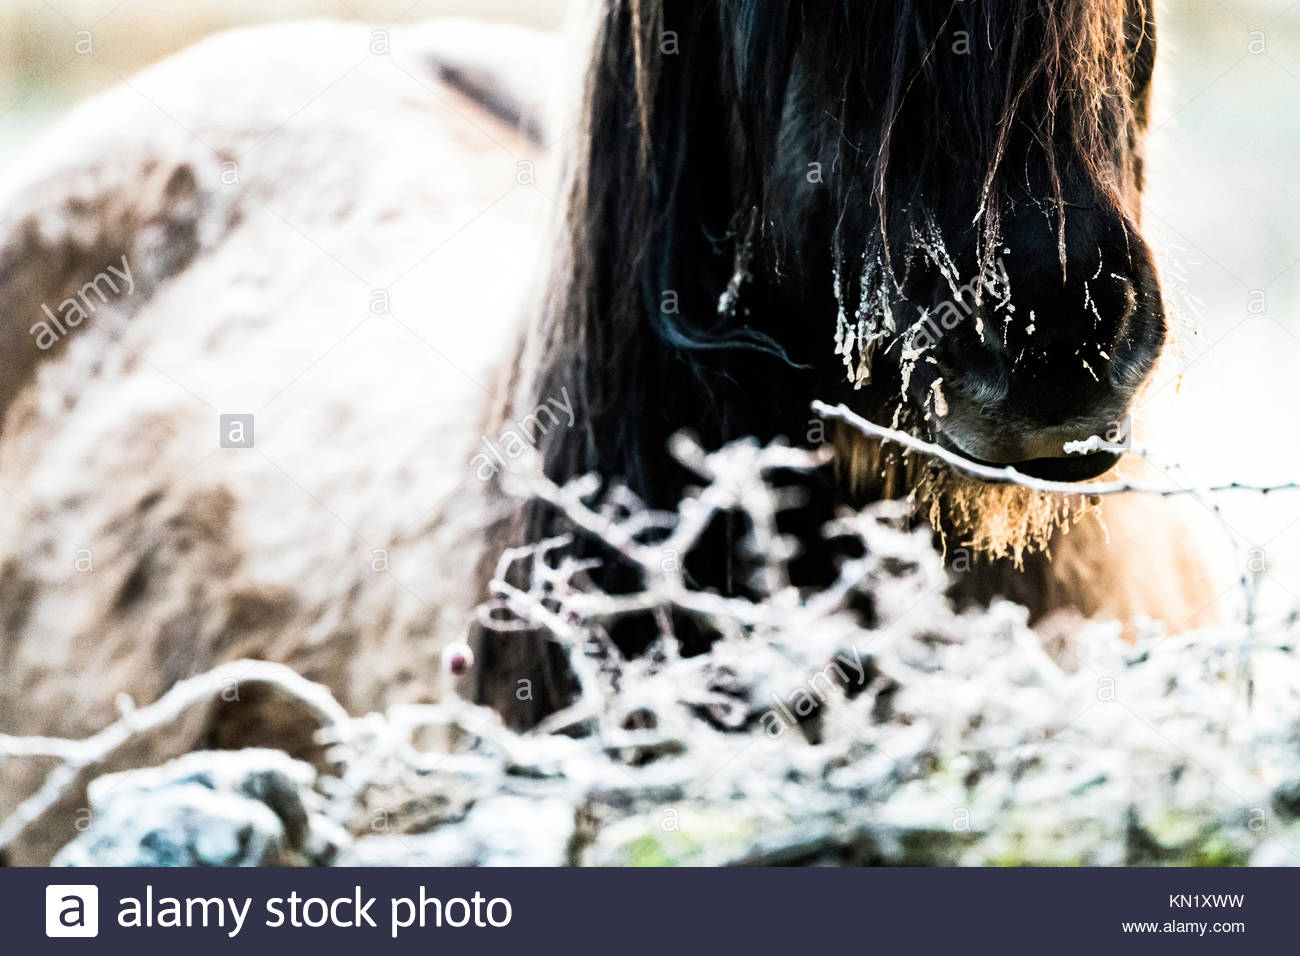 Cessford Farm, Morebattle Kelso, Scottish Borders, UK. 10th December 2017. Highland ponies at dawn are unpeturbed - Stock Image